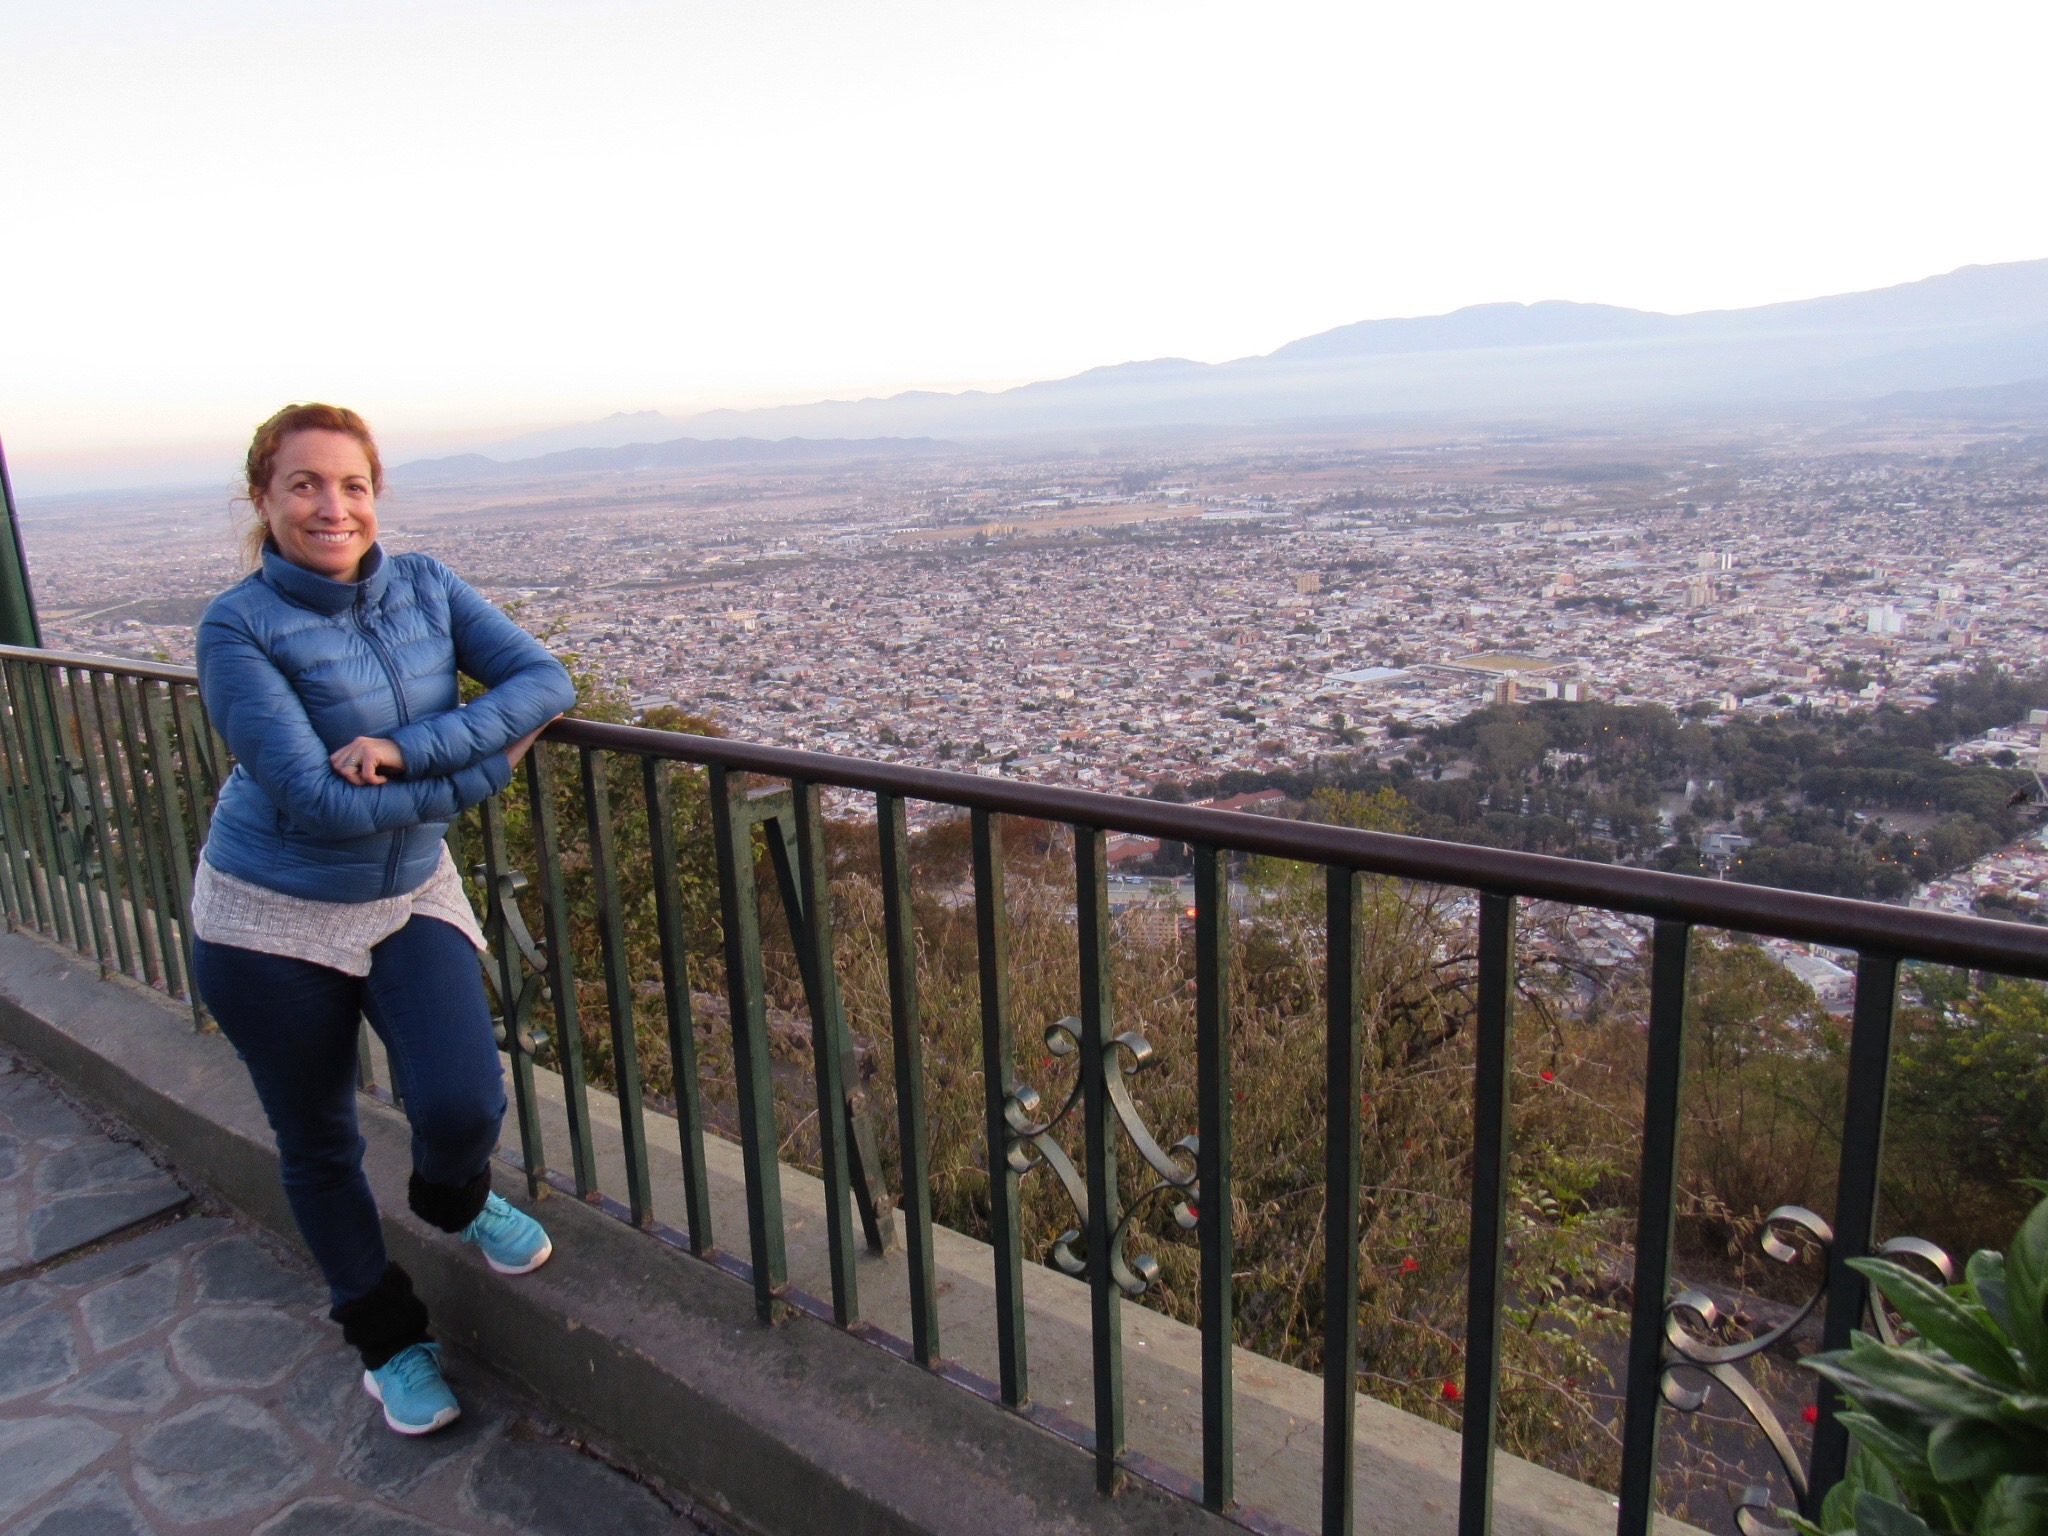 City View from Cerro San Bernardo, Salta, Argentina